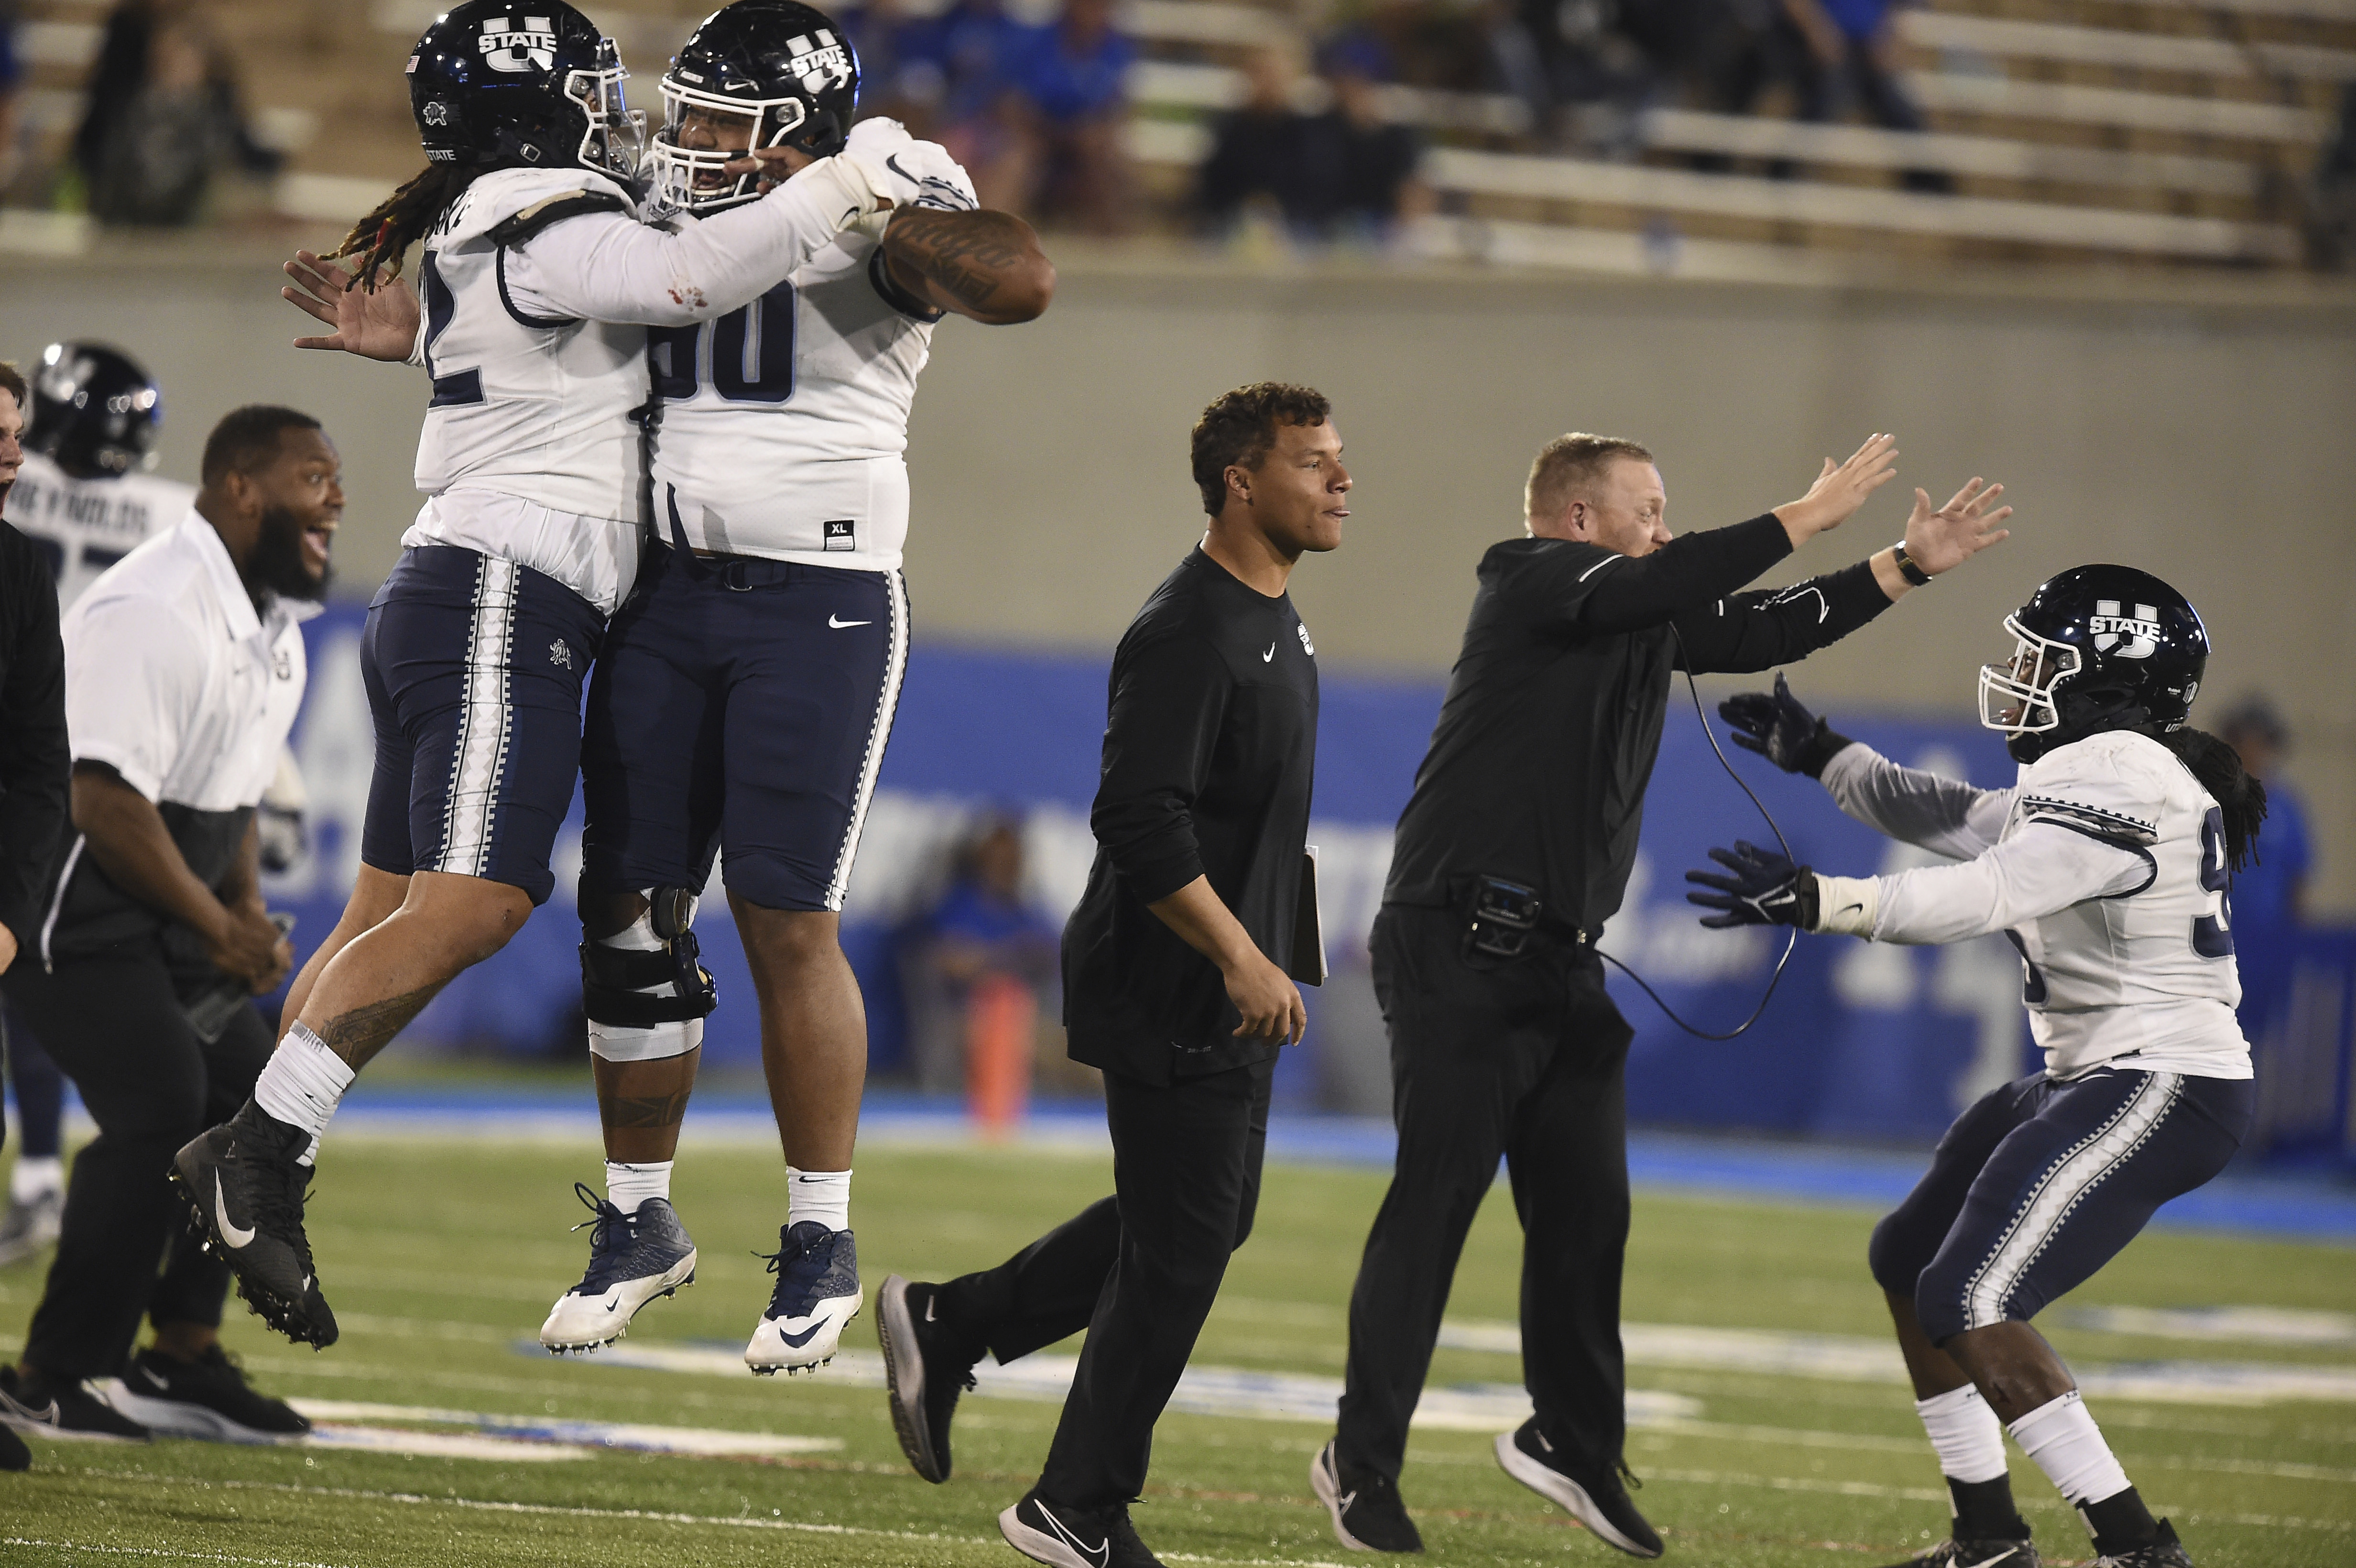 Utah State players and coaches celebrate after Air Force was stopped on fourth down.